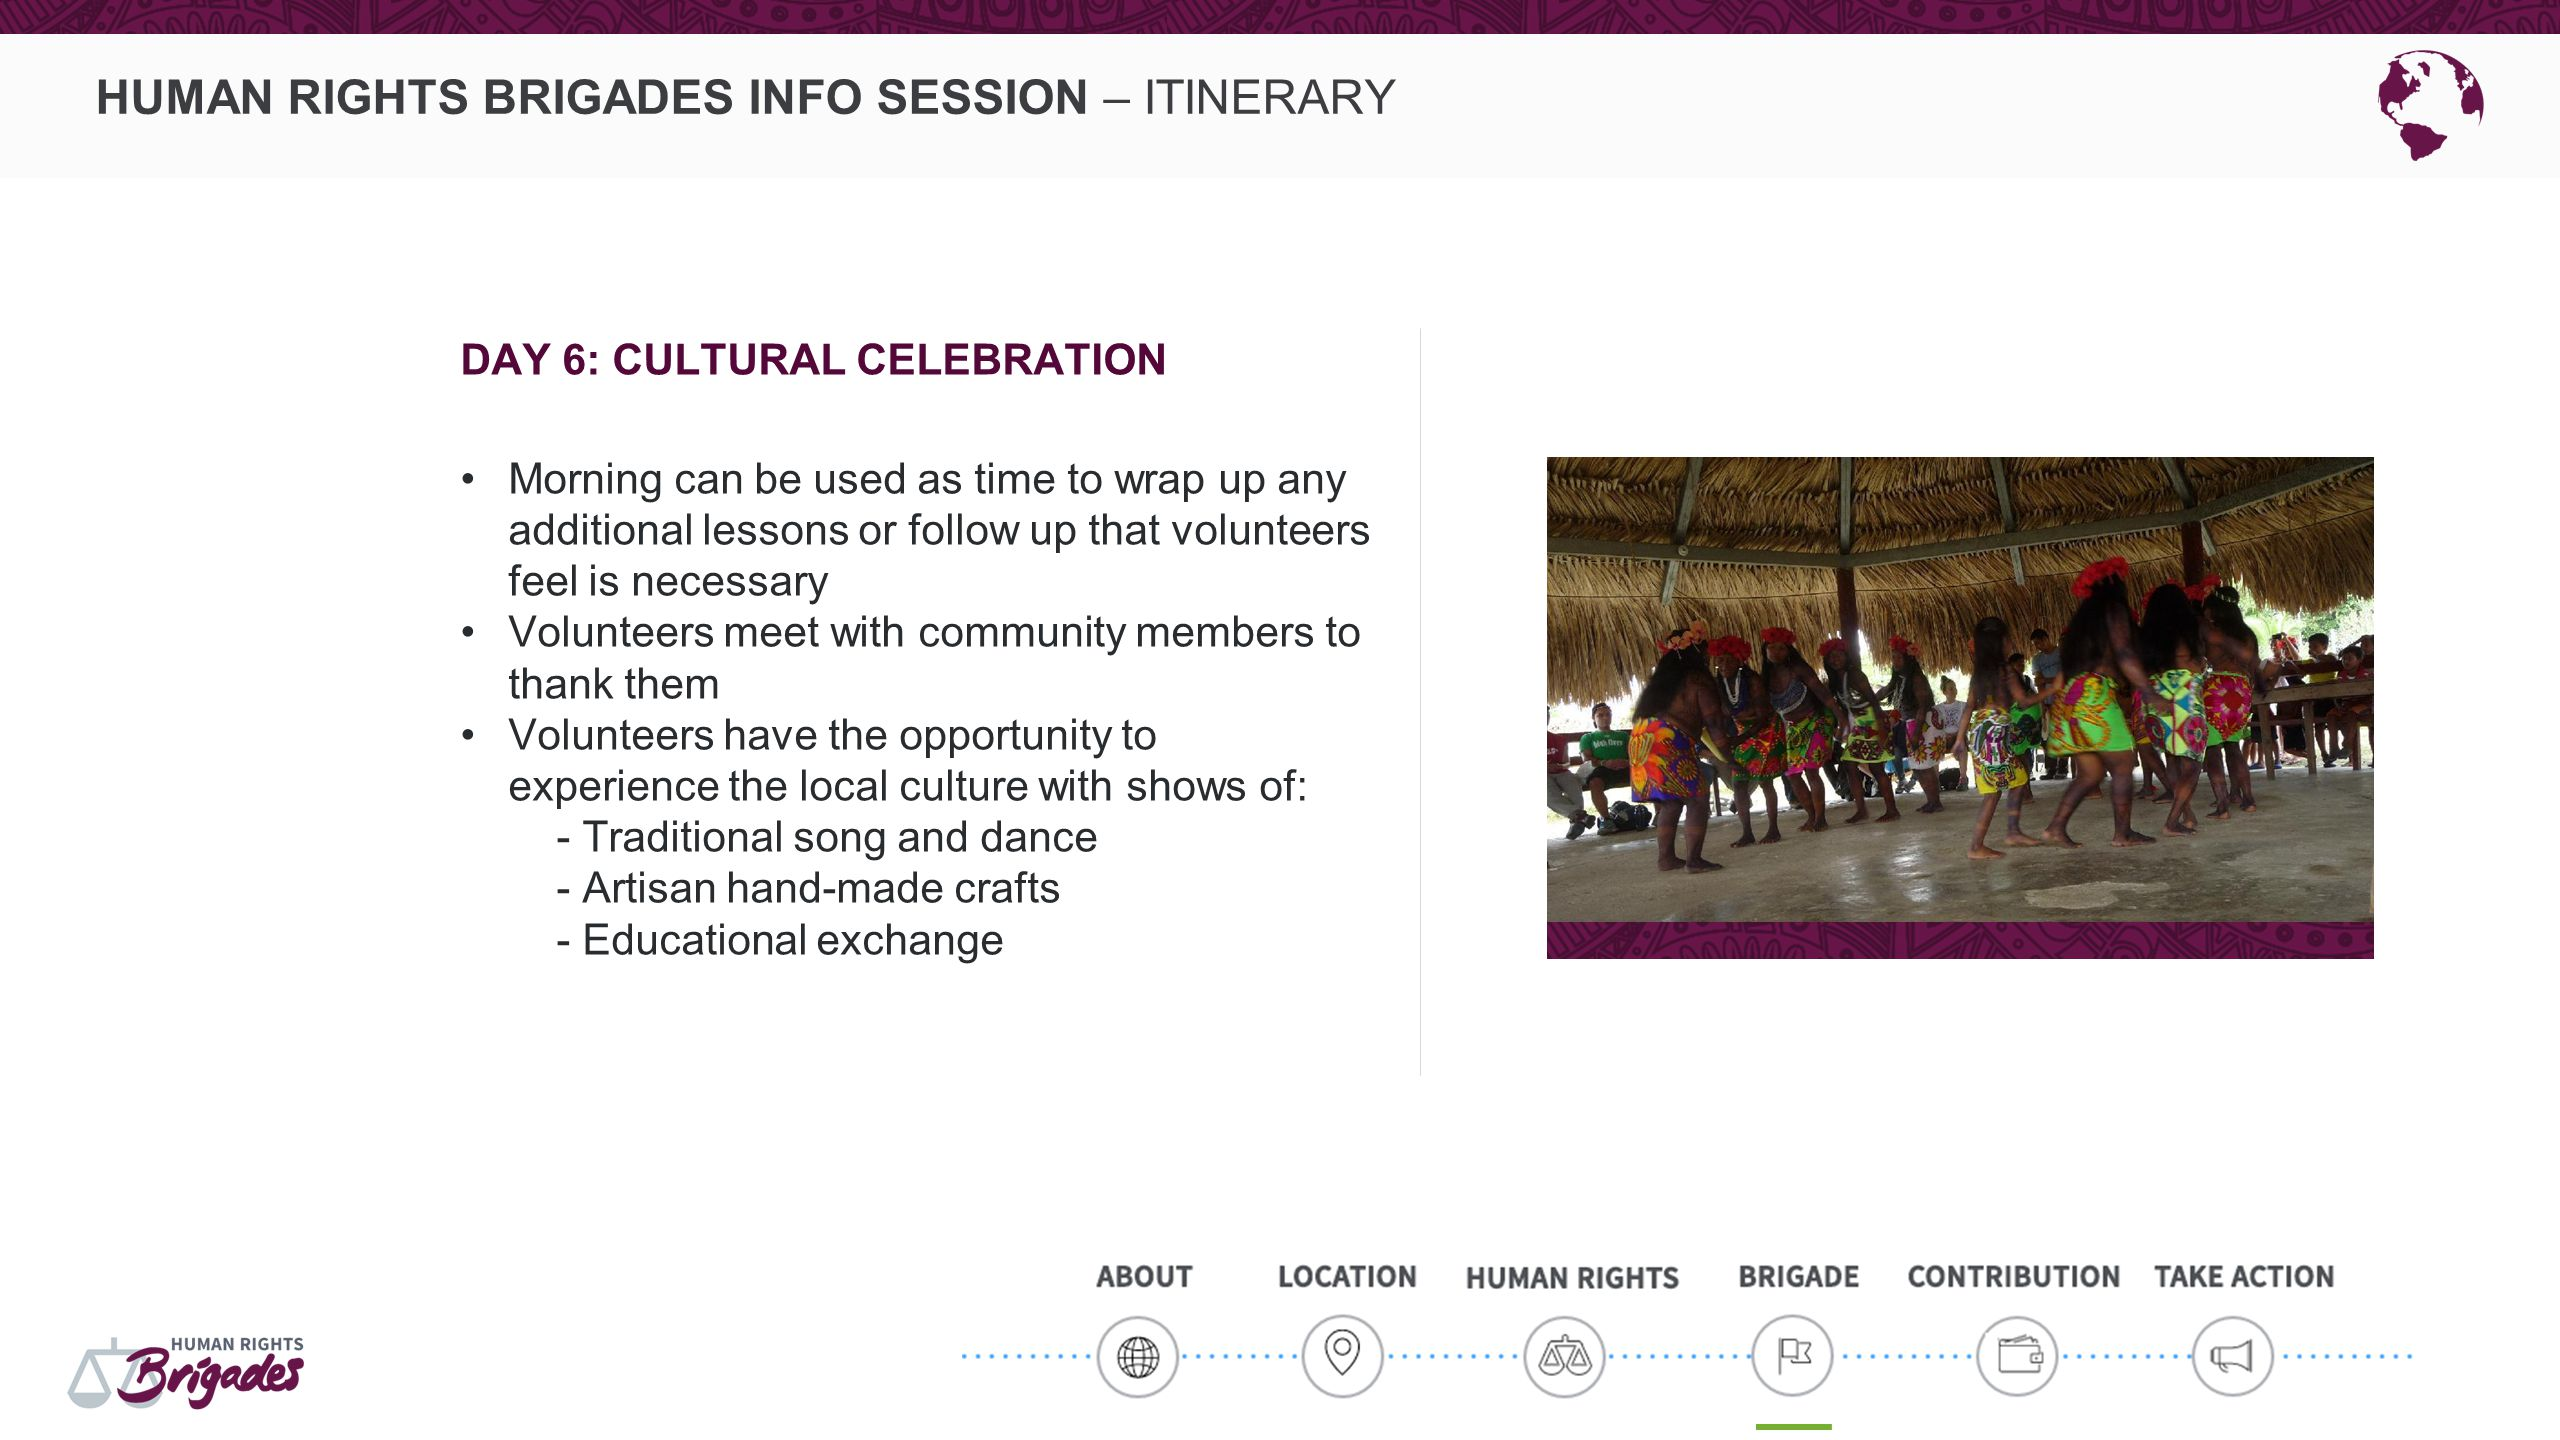 HUMAN RIGHTS BRIGADES INFO SESSION – ITINERARY DAY 6: CULTURAL CELEBRATION Morning can be used as time to wrap up any additional lessons or follow up